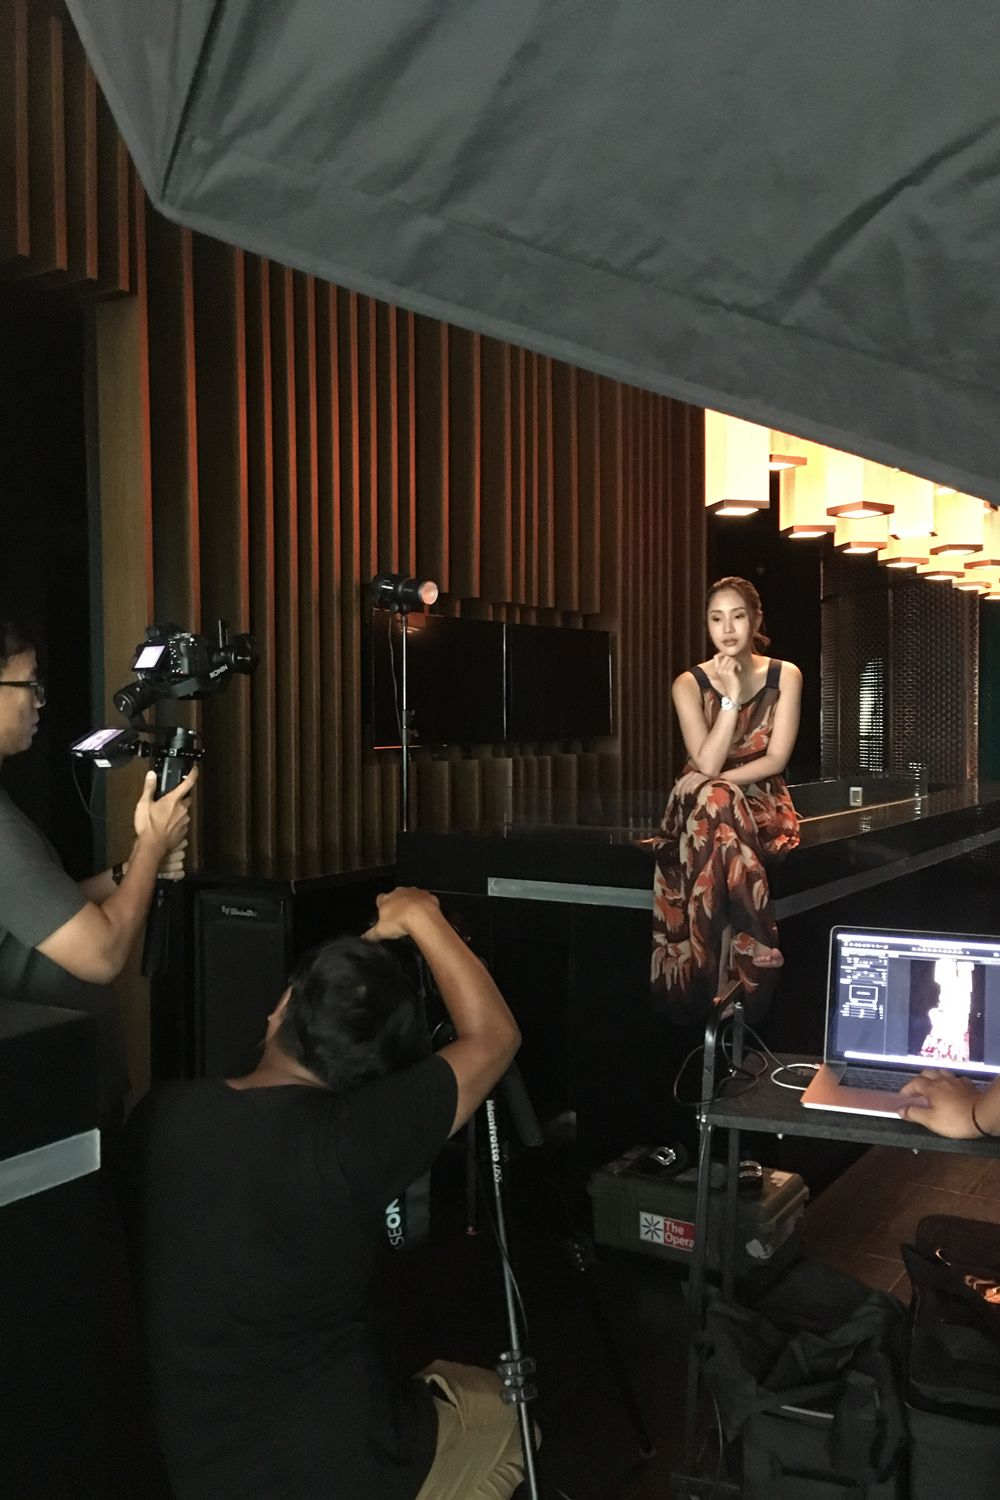 Behind The Scenes Of Ploychompu Umpujh's Cover Shoot